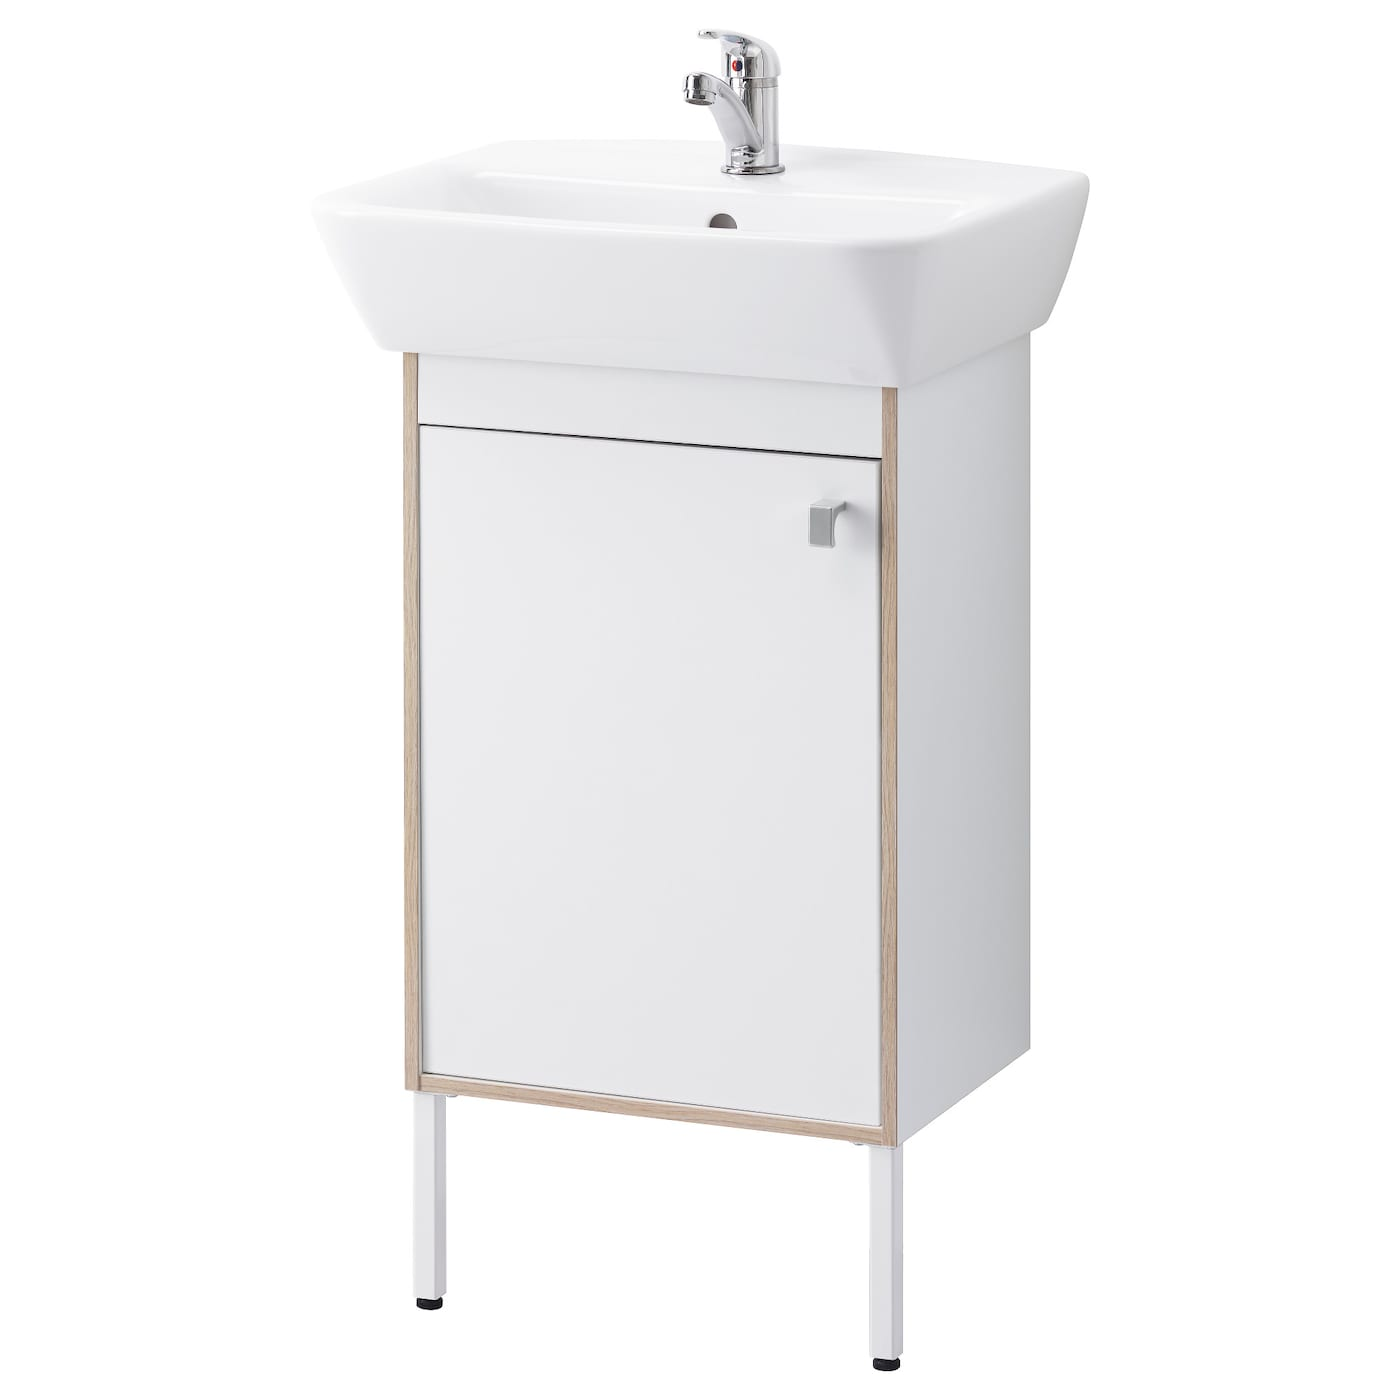 ikea bathroom cabinets tyngen washbasin cabinet with 1 door white 51x40x88 cm ikea 13191